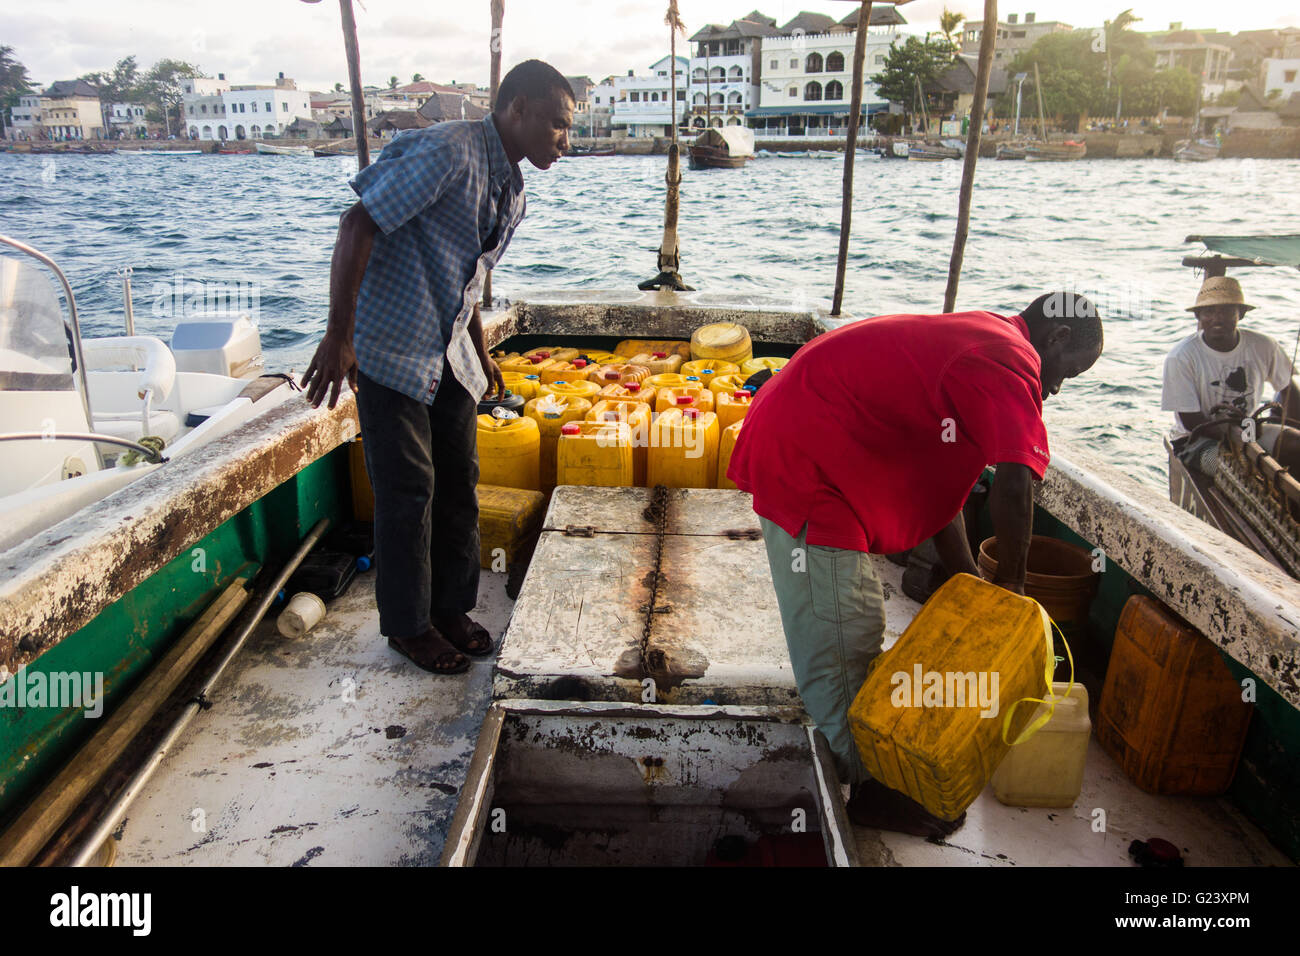 A man picks up fuel from a refueling boat in Lamu, Kenya Stock Photo